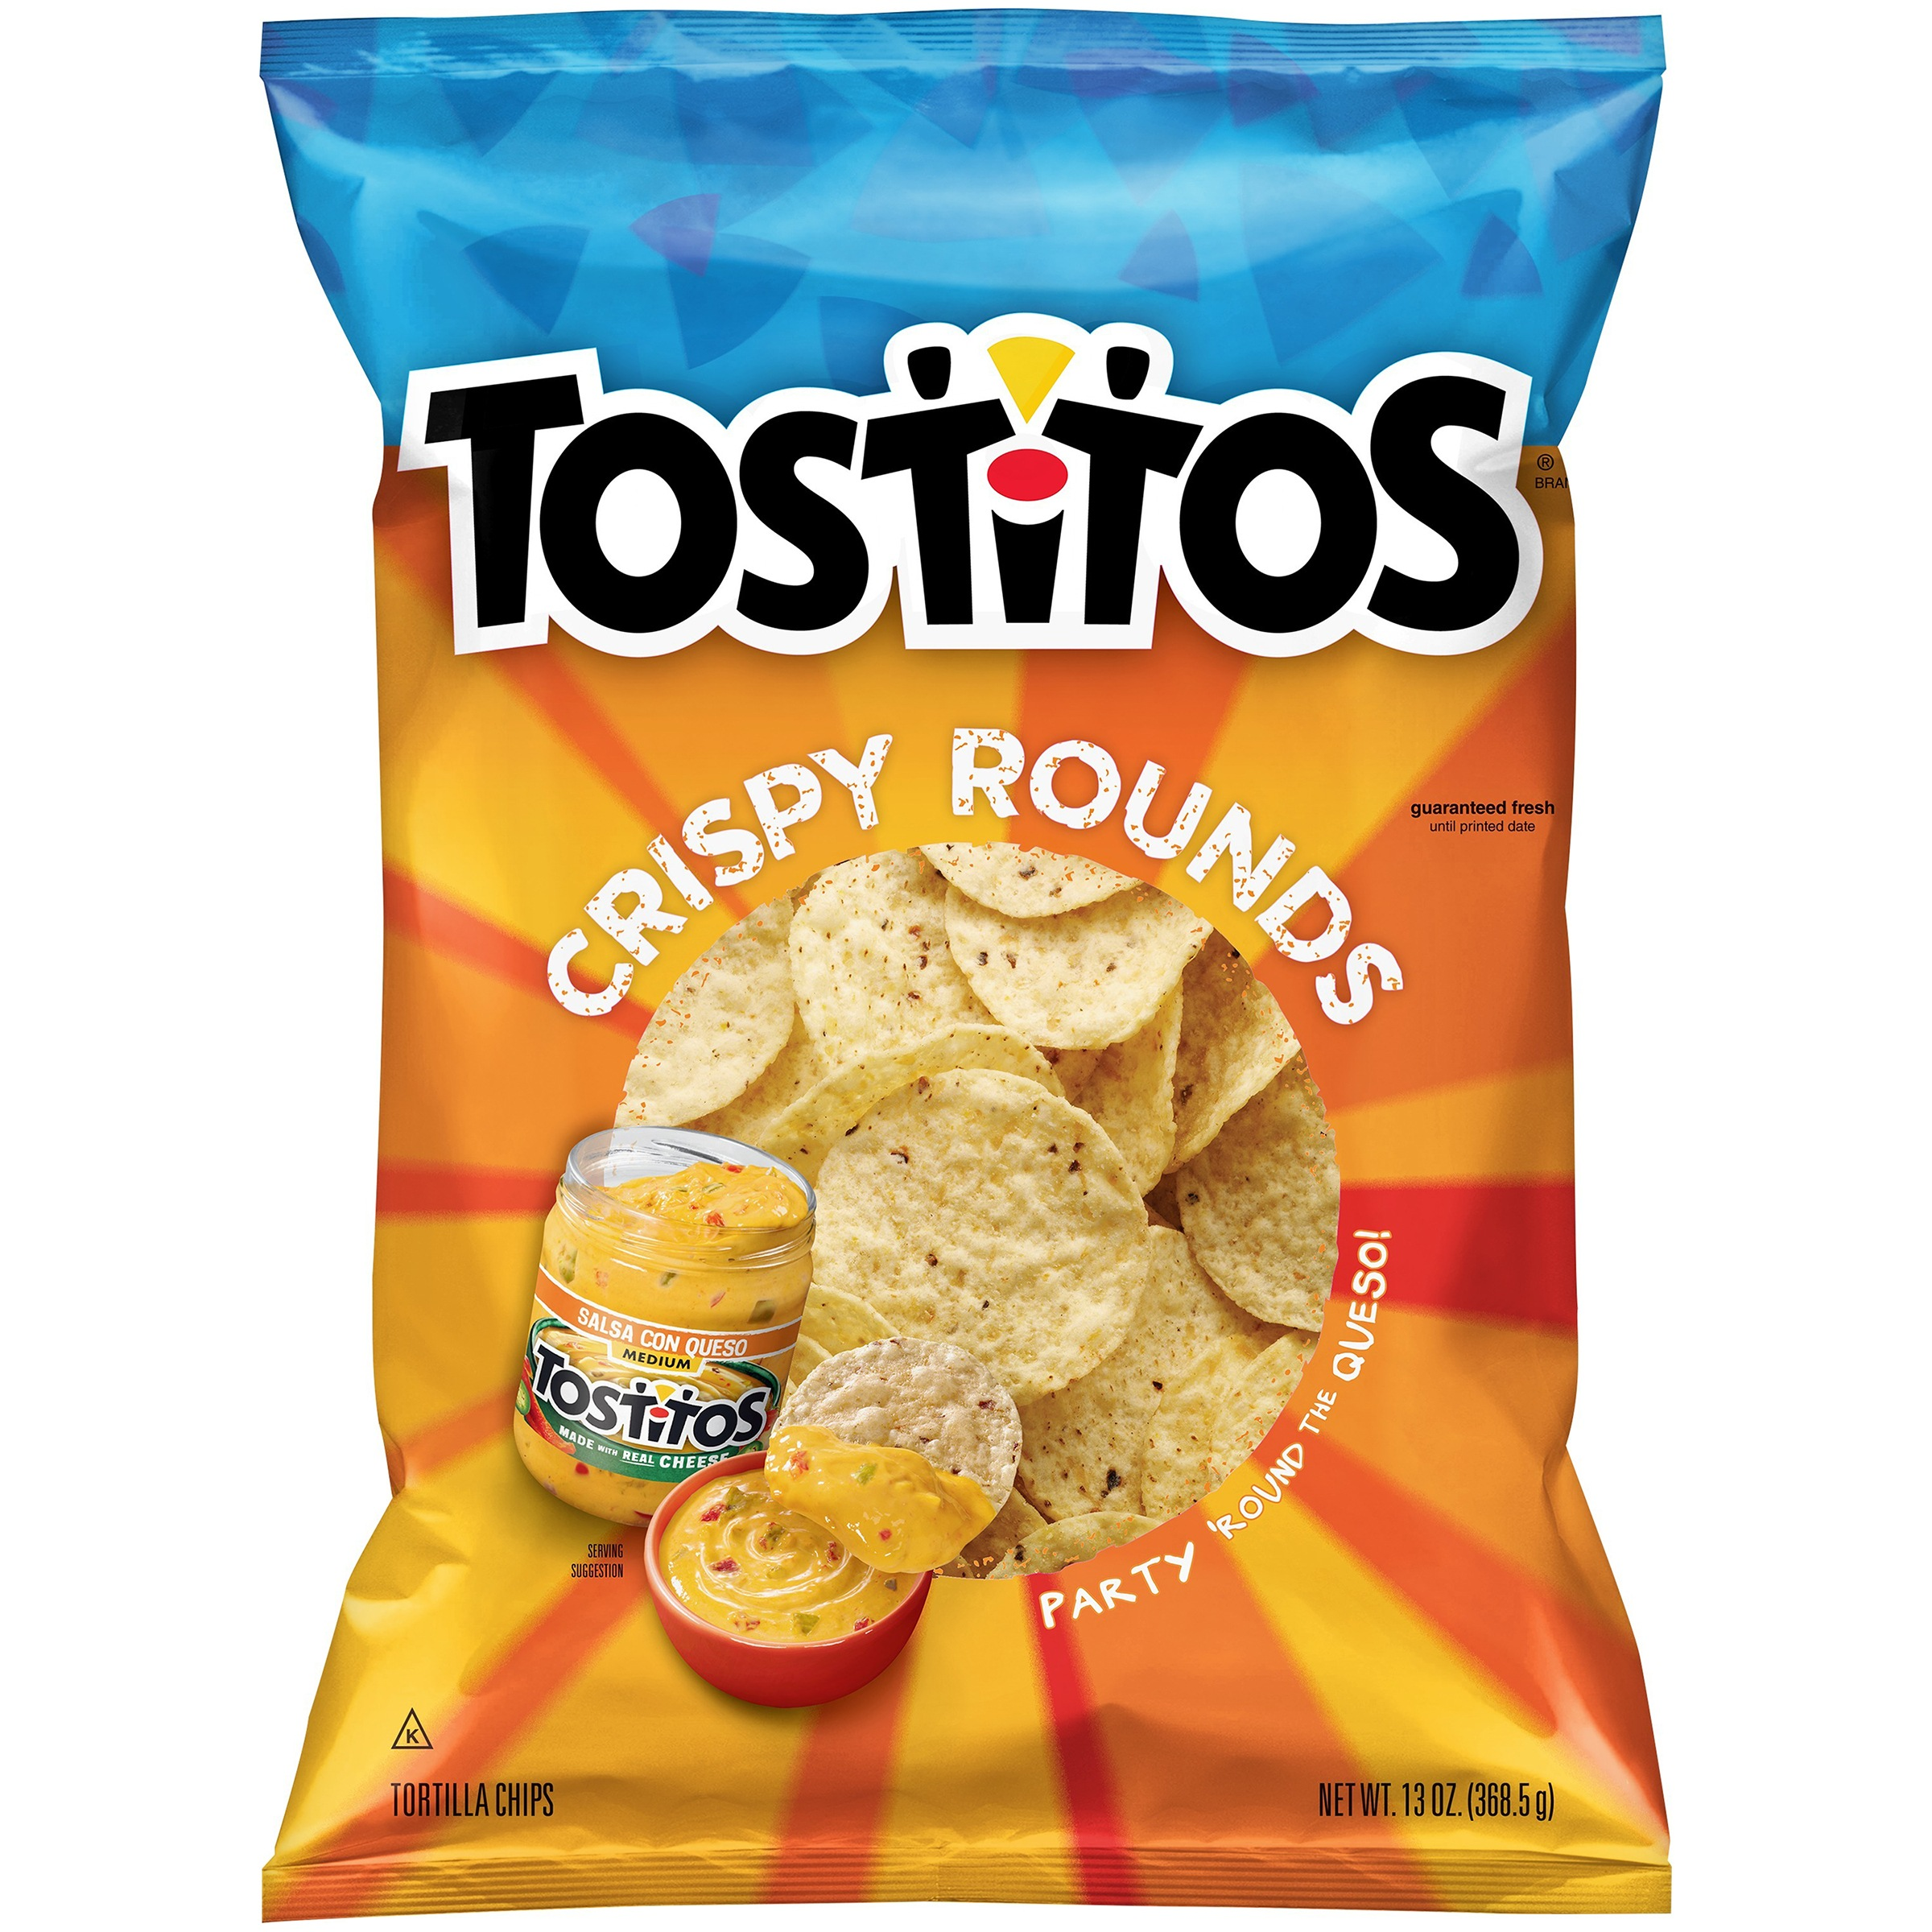 Tostitos Crispy Rounds Tortilla Chips, 13 oz Bag